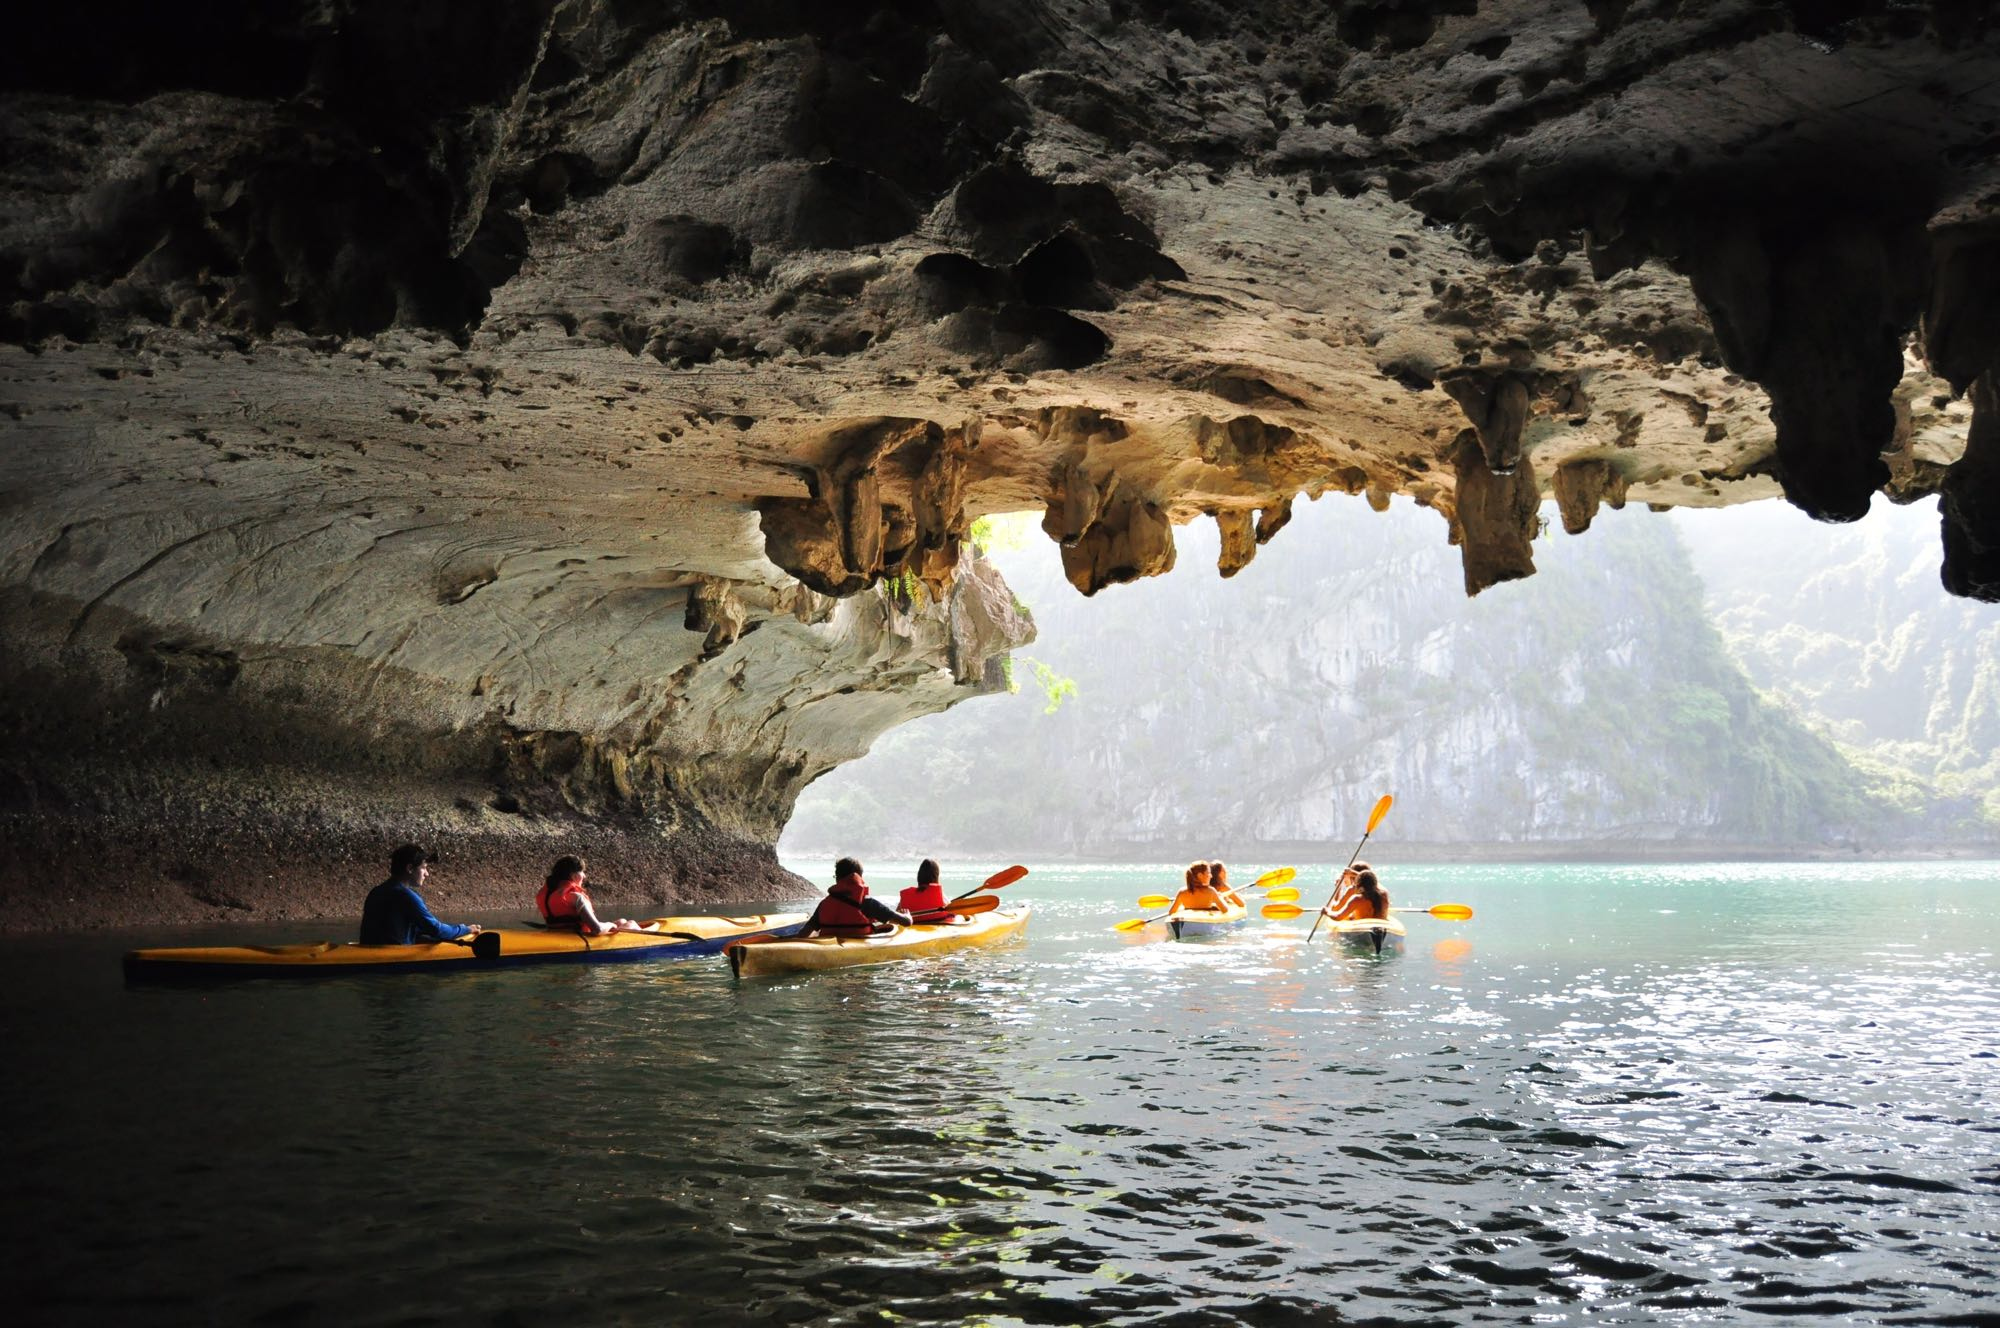 The Best Places to go Kayaking with your Family 2021